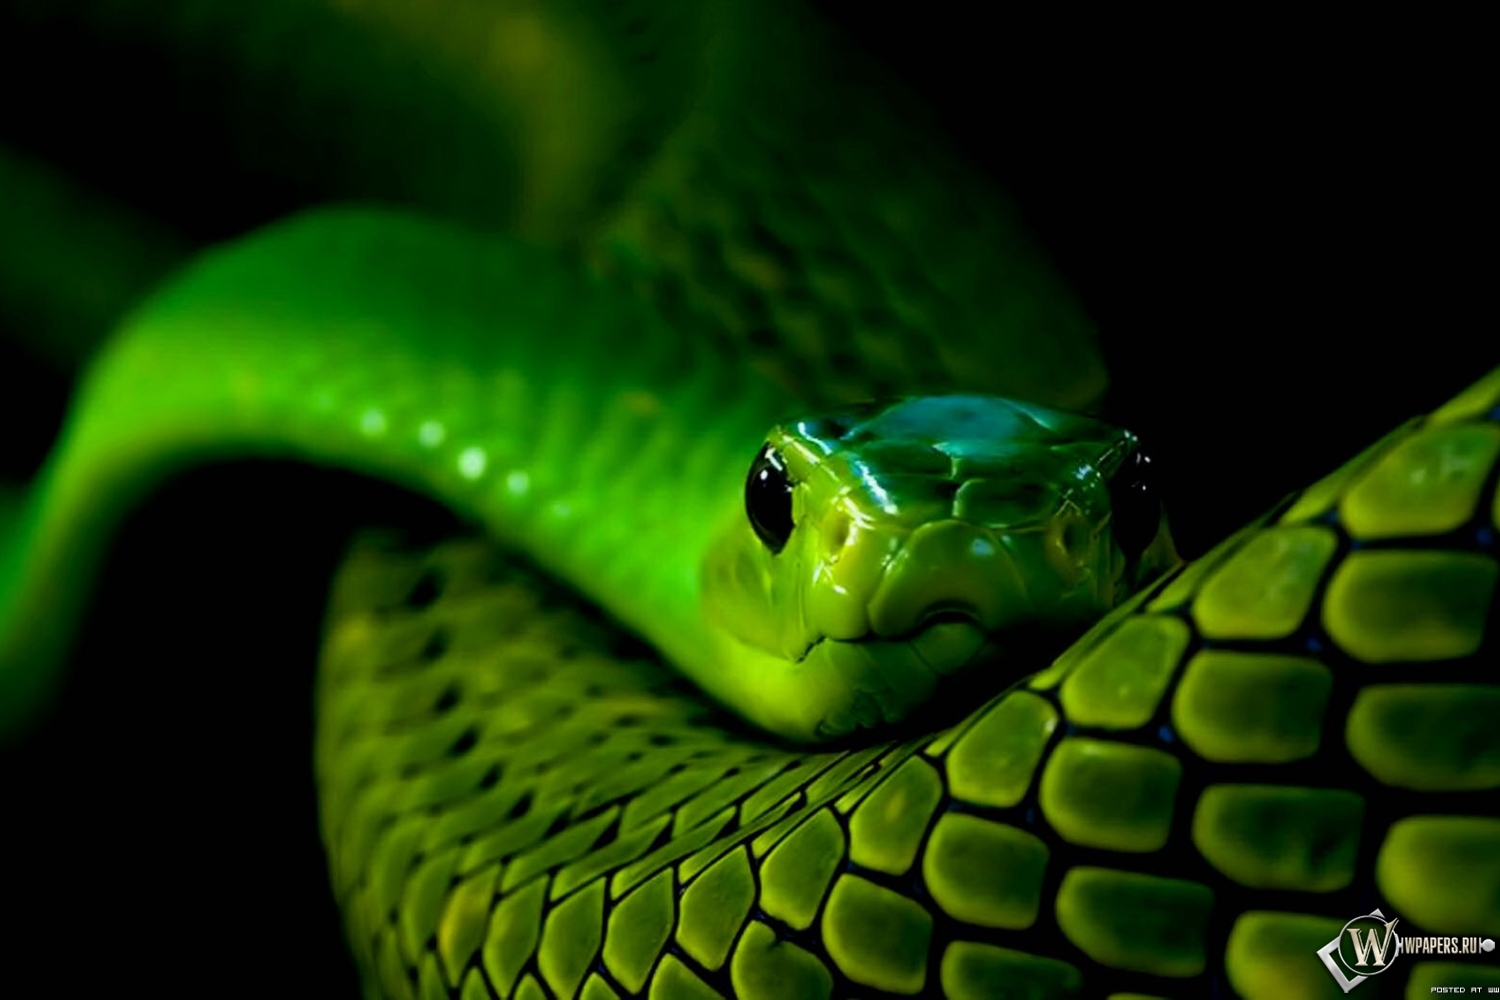 Natal green snake pictures